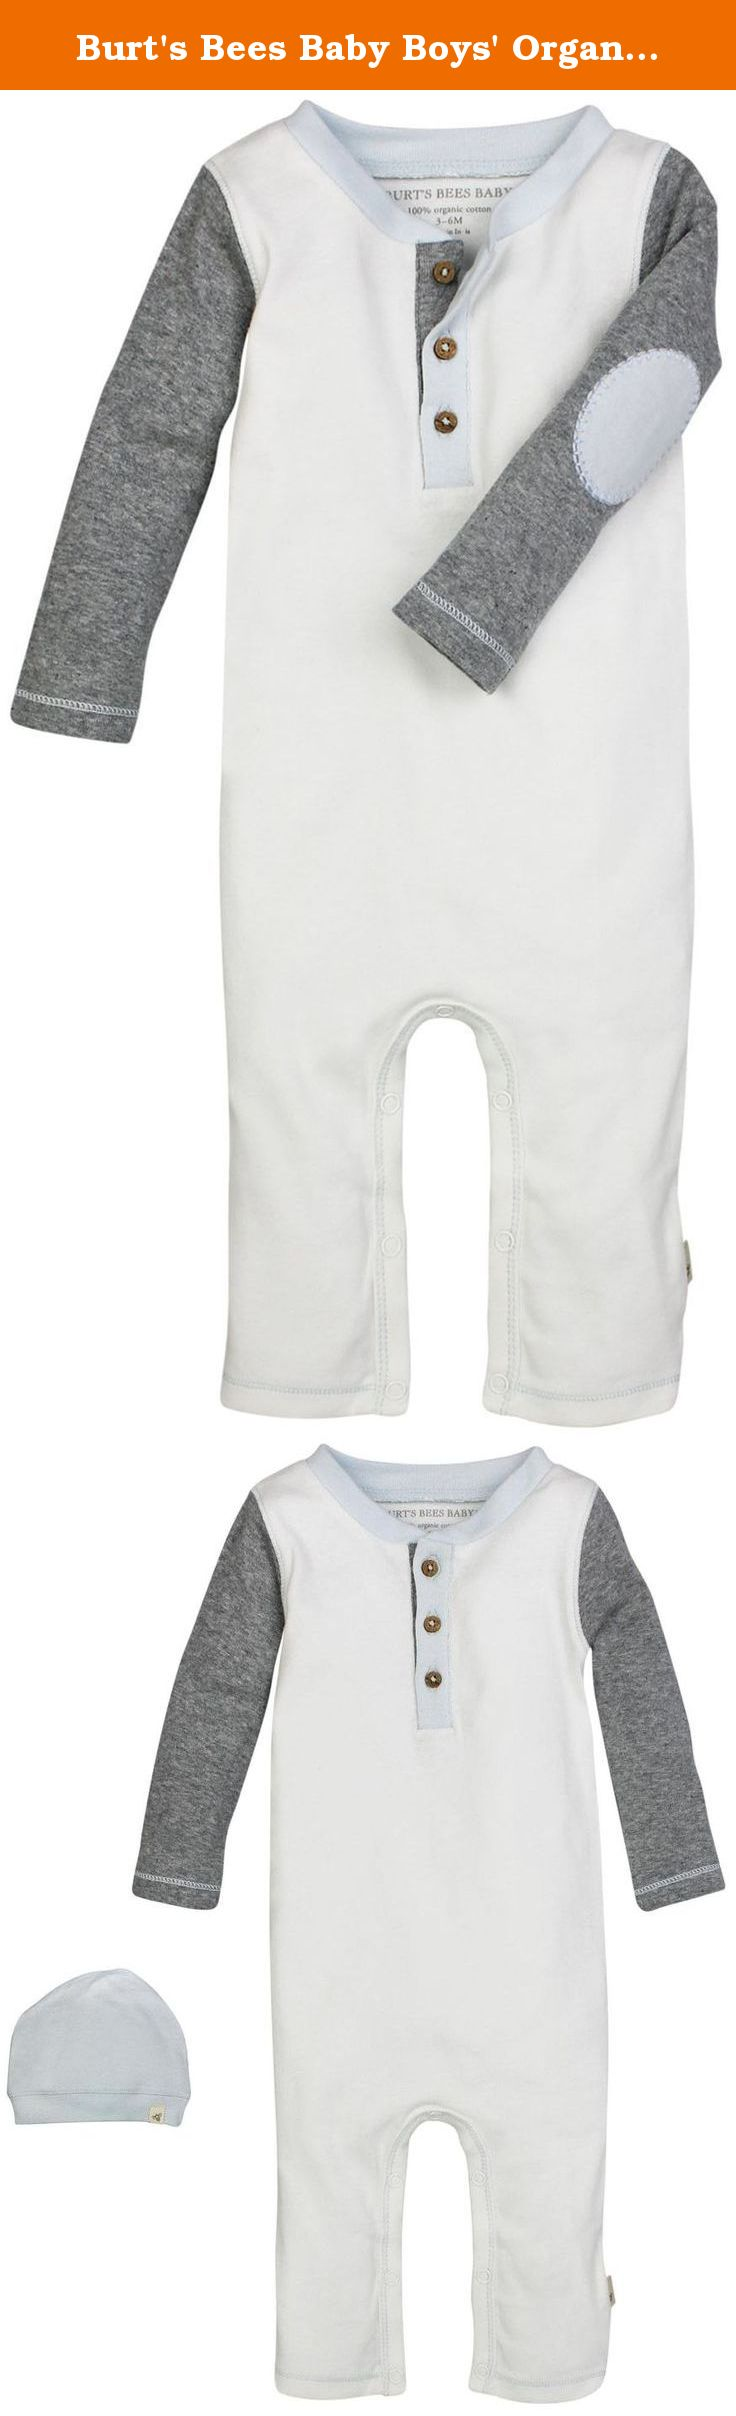 a92925d4485 Burt's Bees Baby Boys' Organic Henley Coverall + Slouchy Hat, Vanilla  Cream, 18